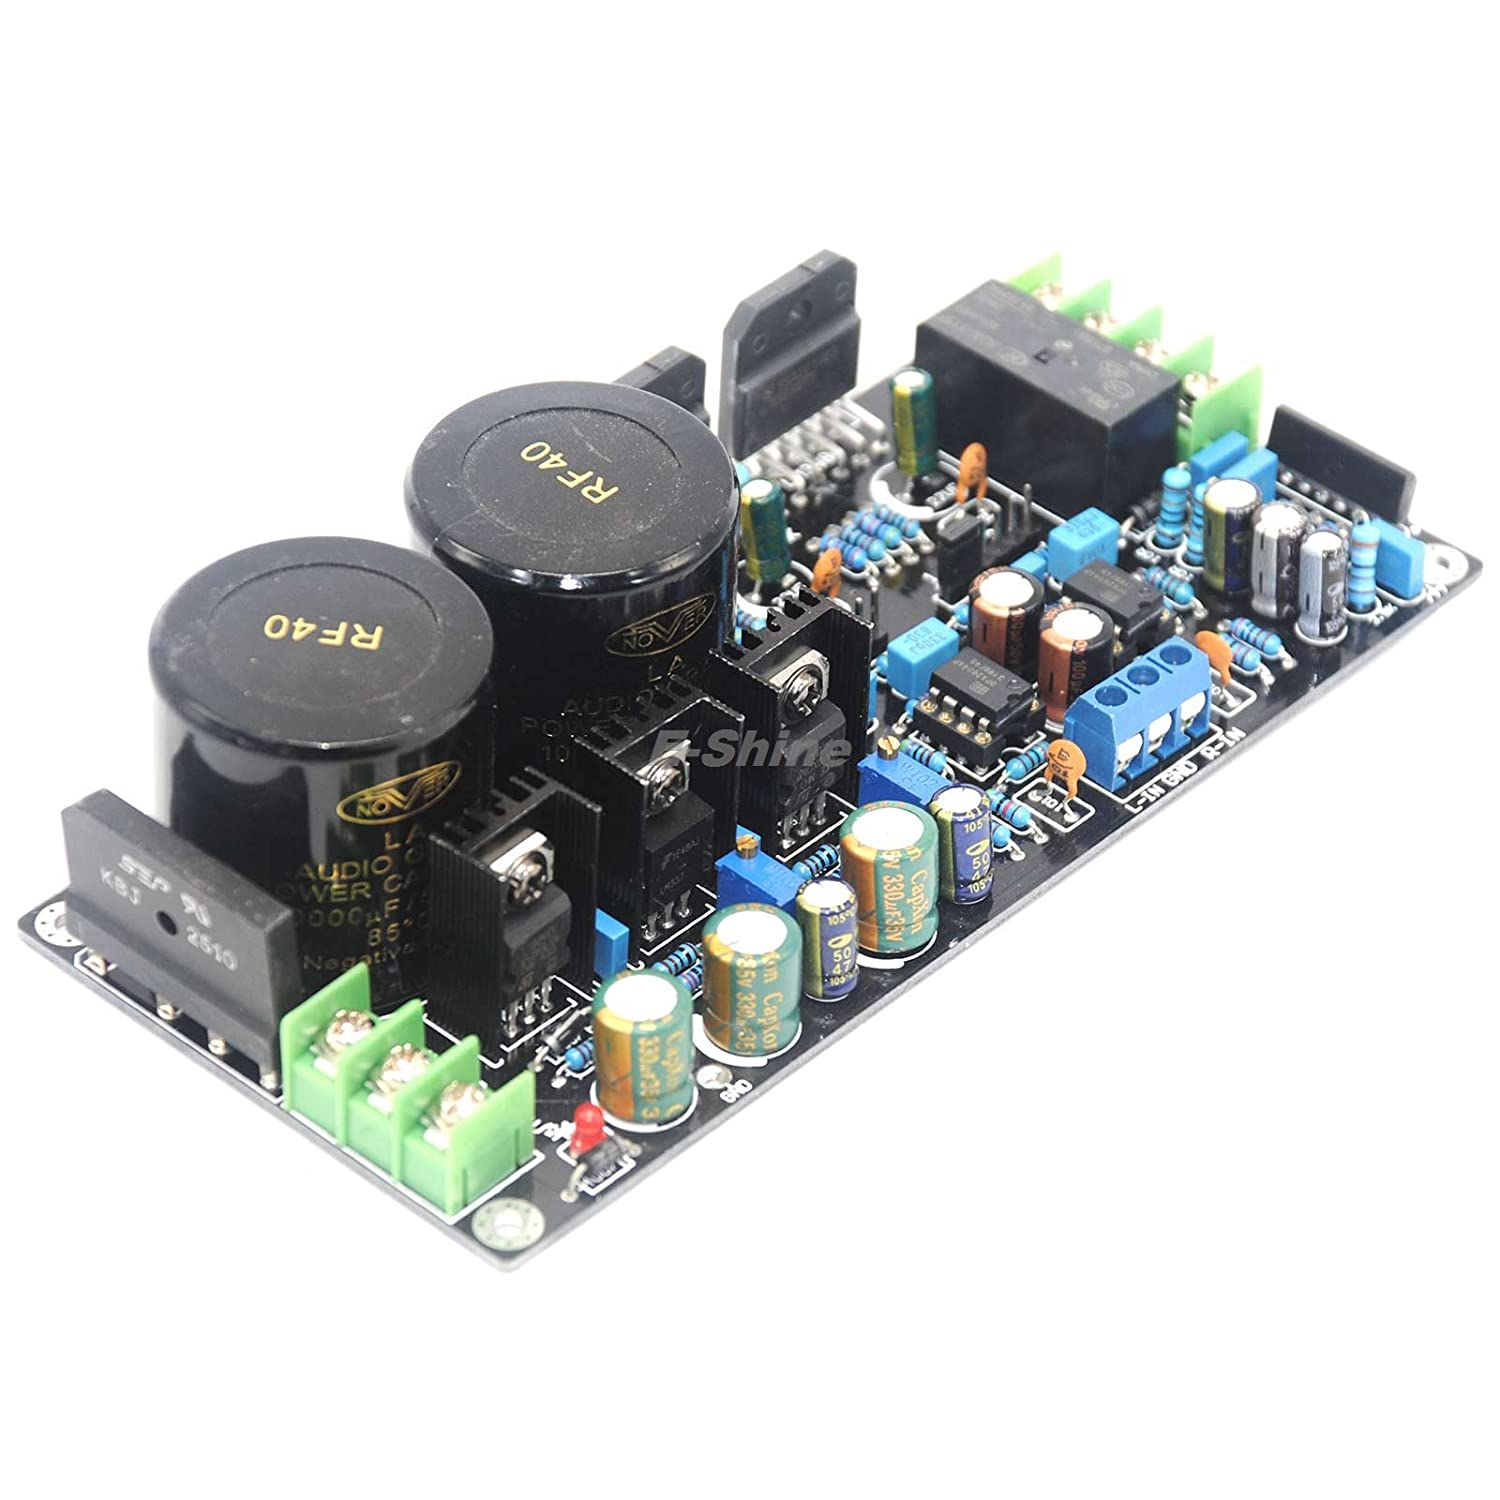 Assembled Lm3886 Opa2604 Plus Amplifier Board With Speaker Pcb Circuit Hasl Electronic Printed Maker Audio 68w Home Theater